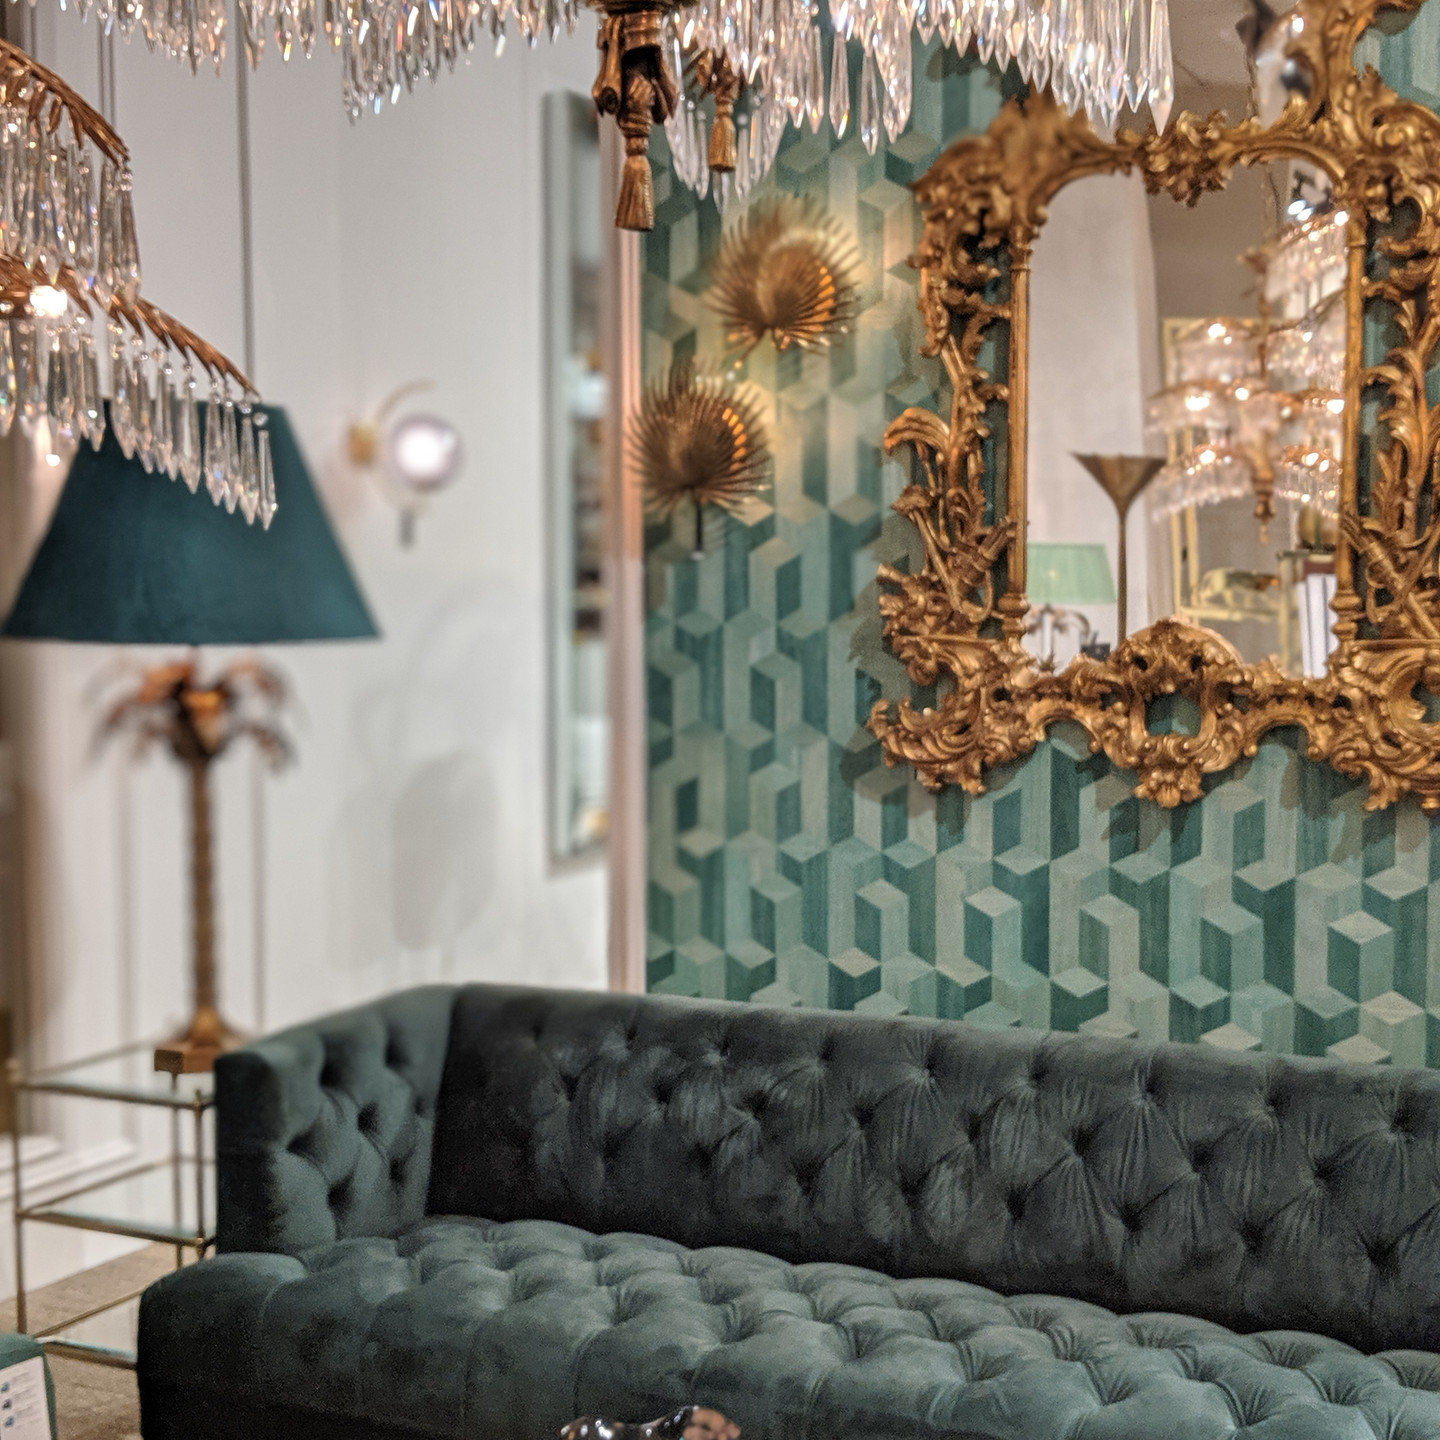 Green Velvet Eichholtz Sofa with Green Wallpaper, Gilded Wall Mirror, and Crystal Palm Tree Inspired Chandelier